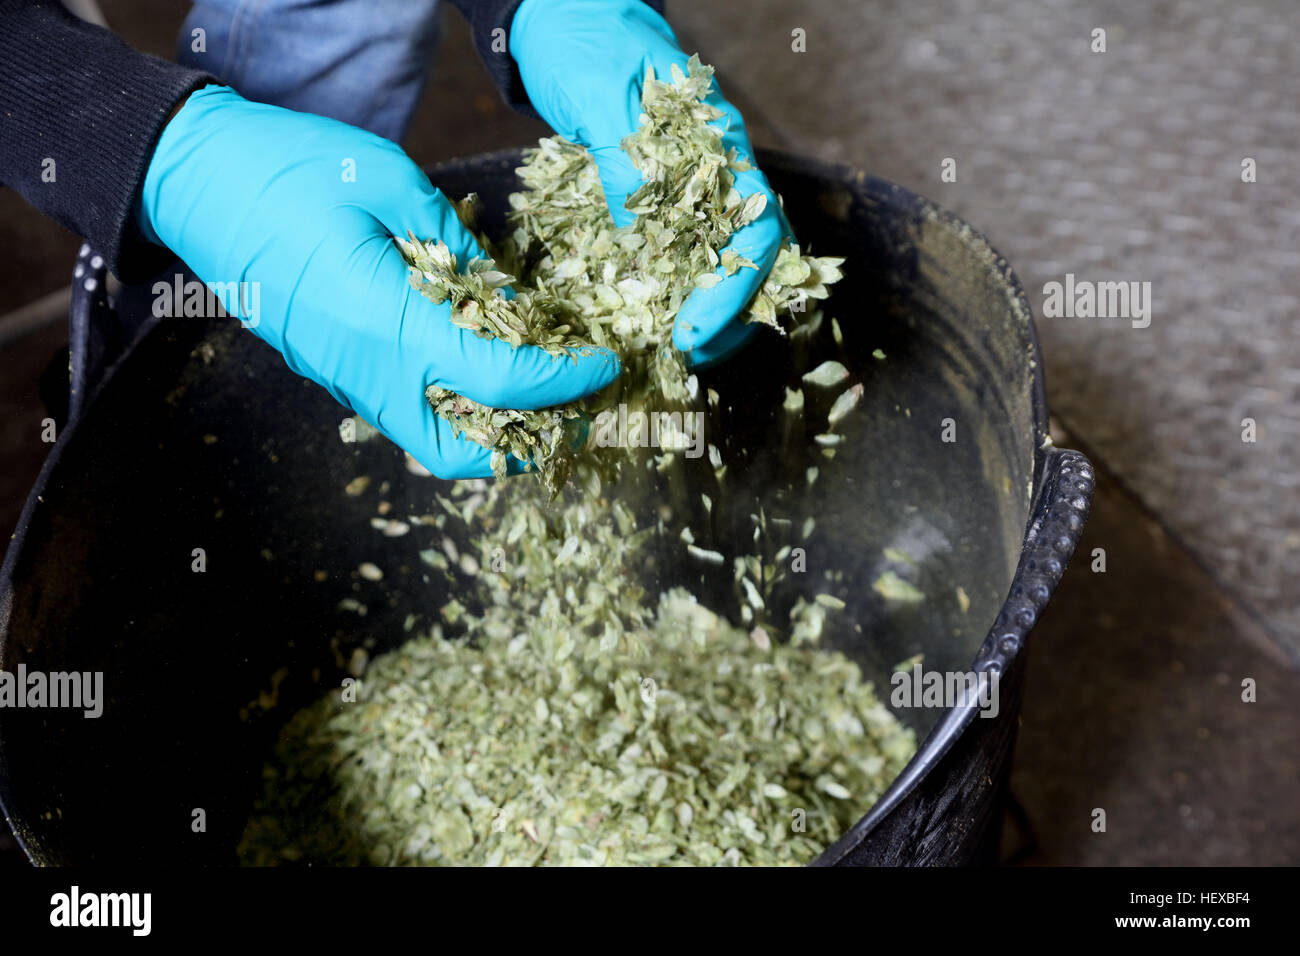 Worker in brewery breaking up hops, close-up - Stock Image